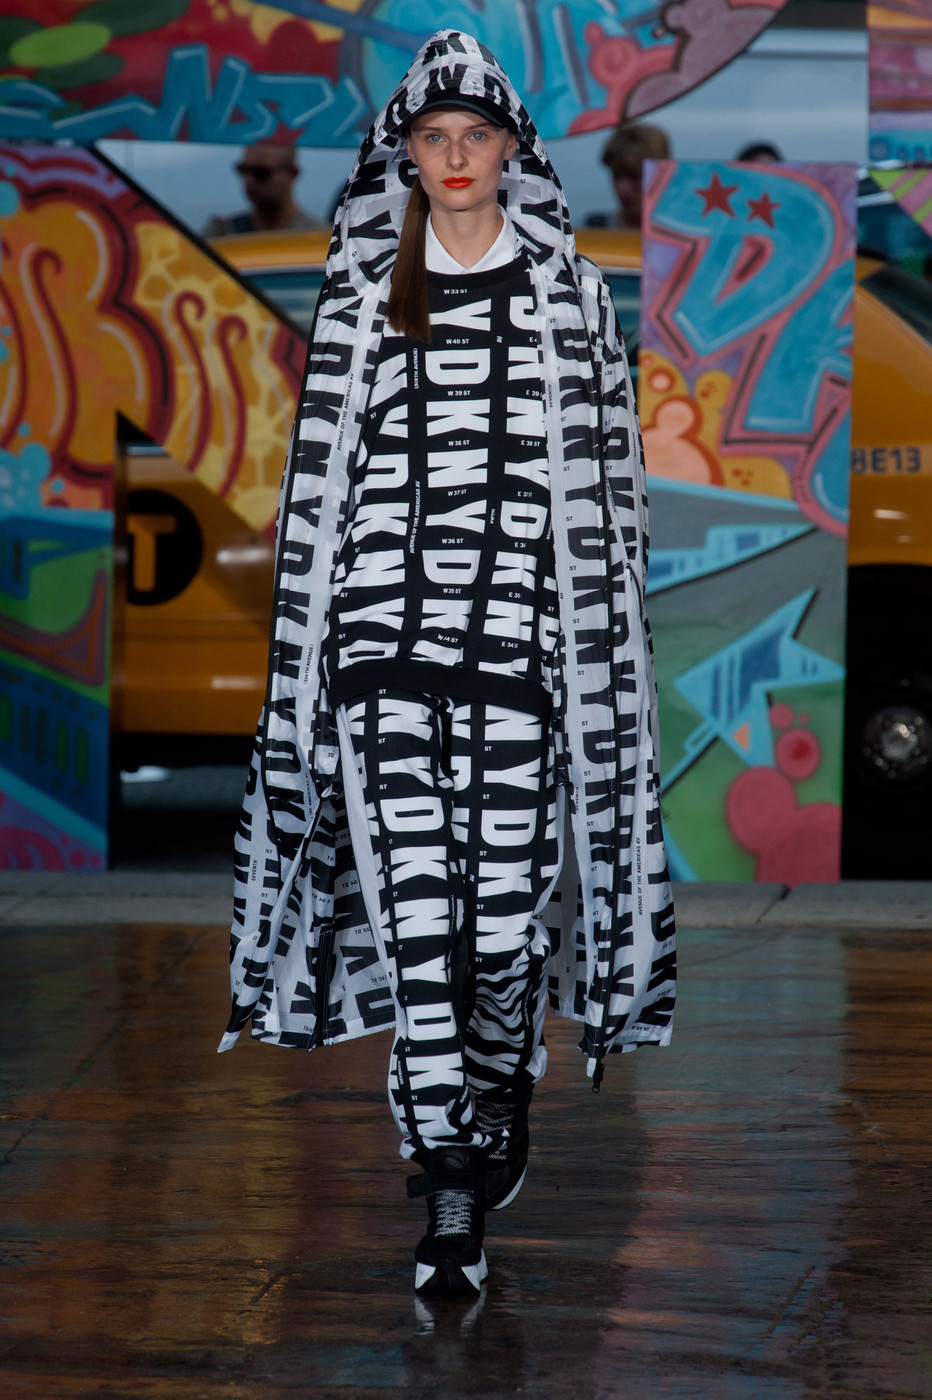 Surprise! Rita Ora Walked (No, Danced!) the Runway at DKNY